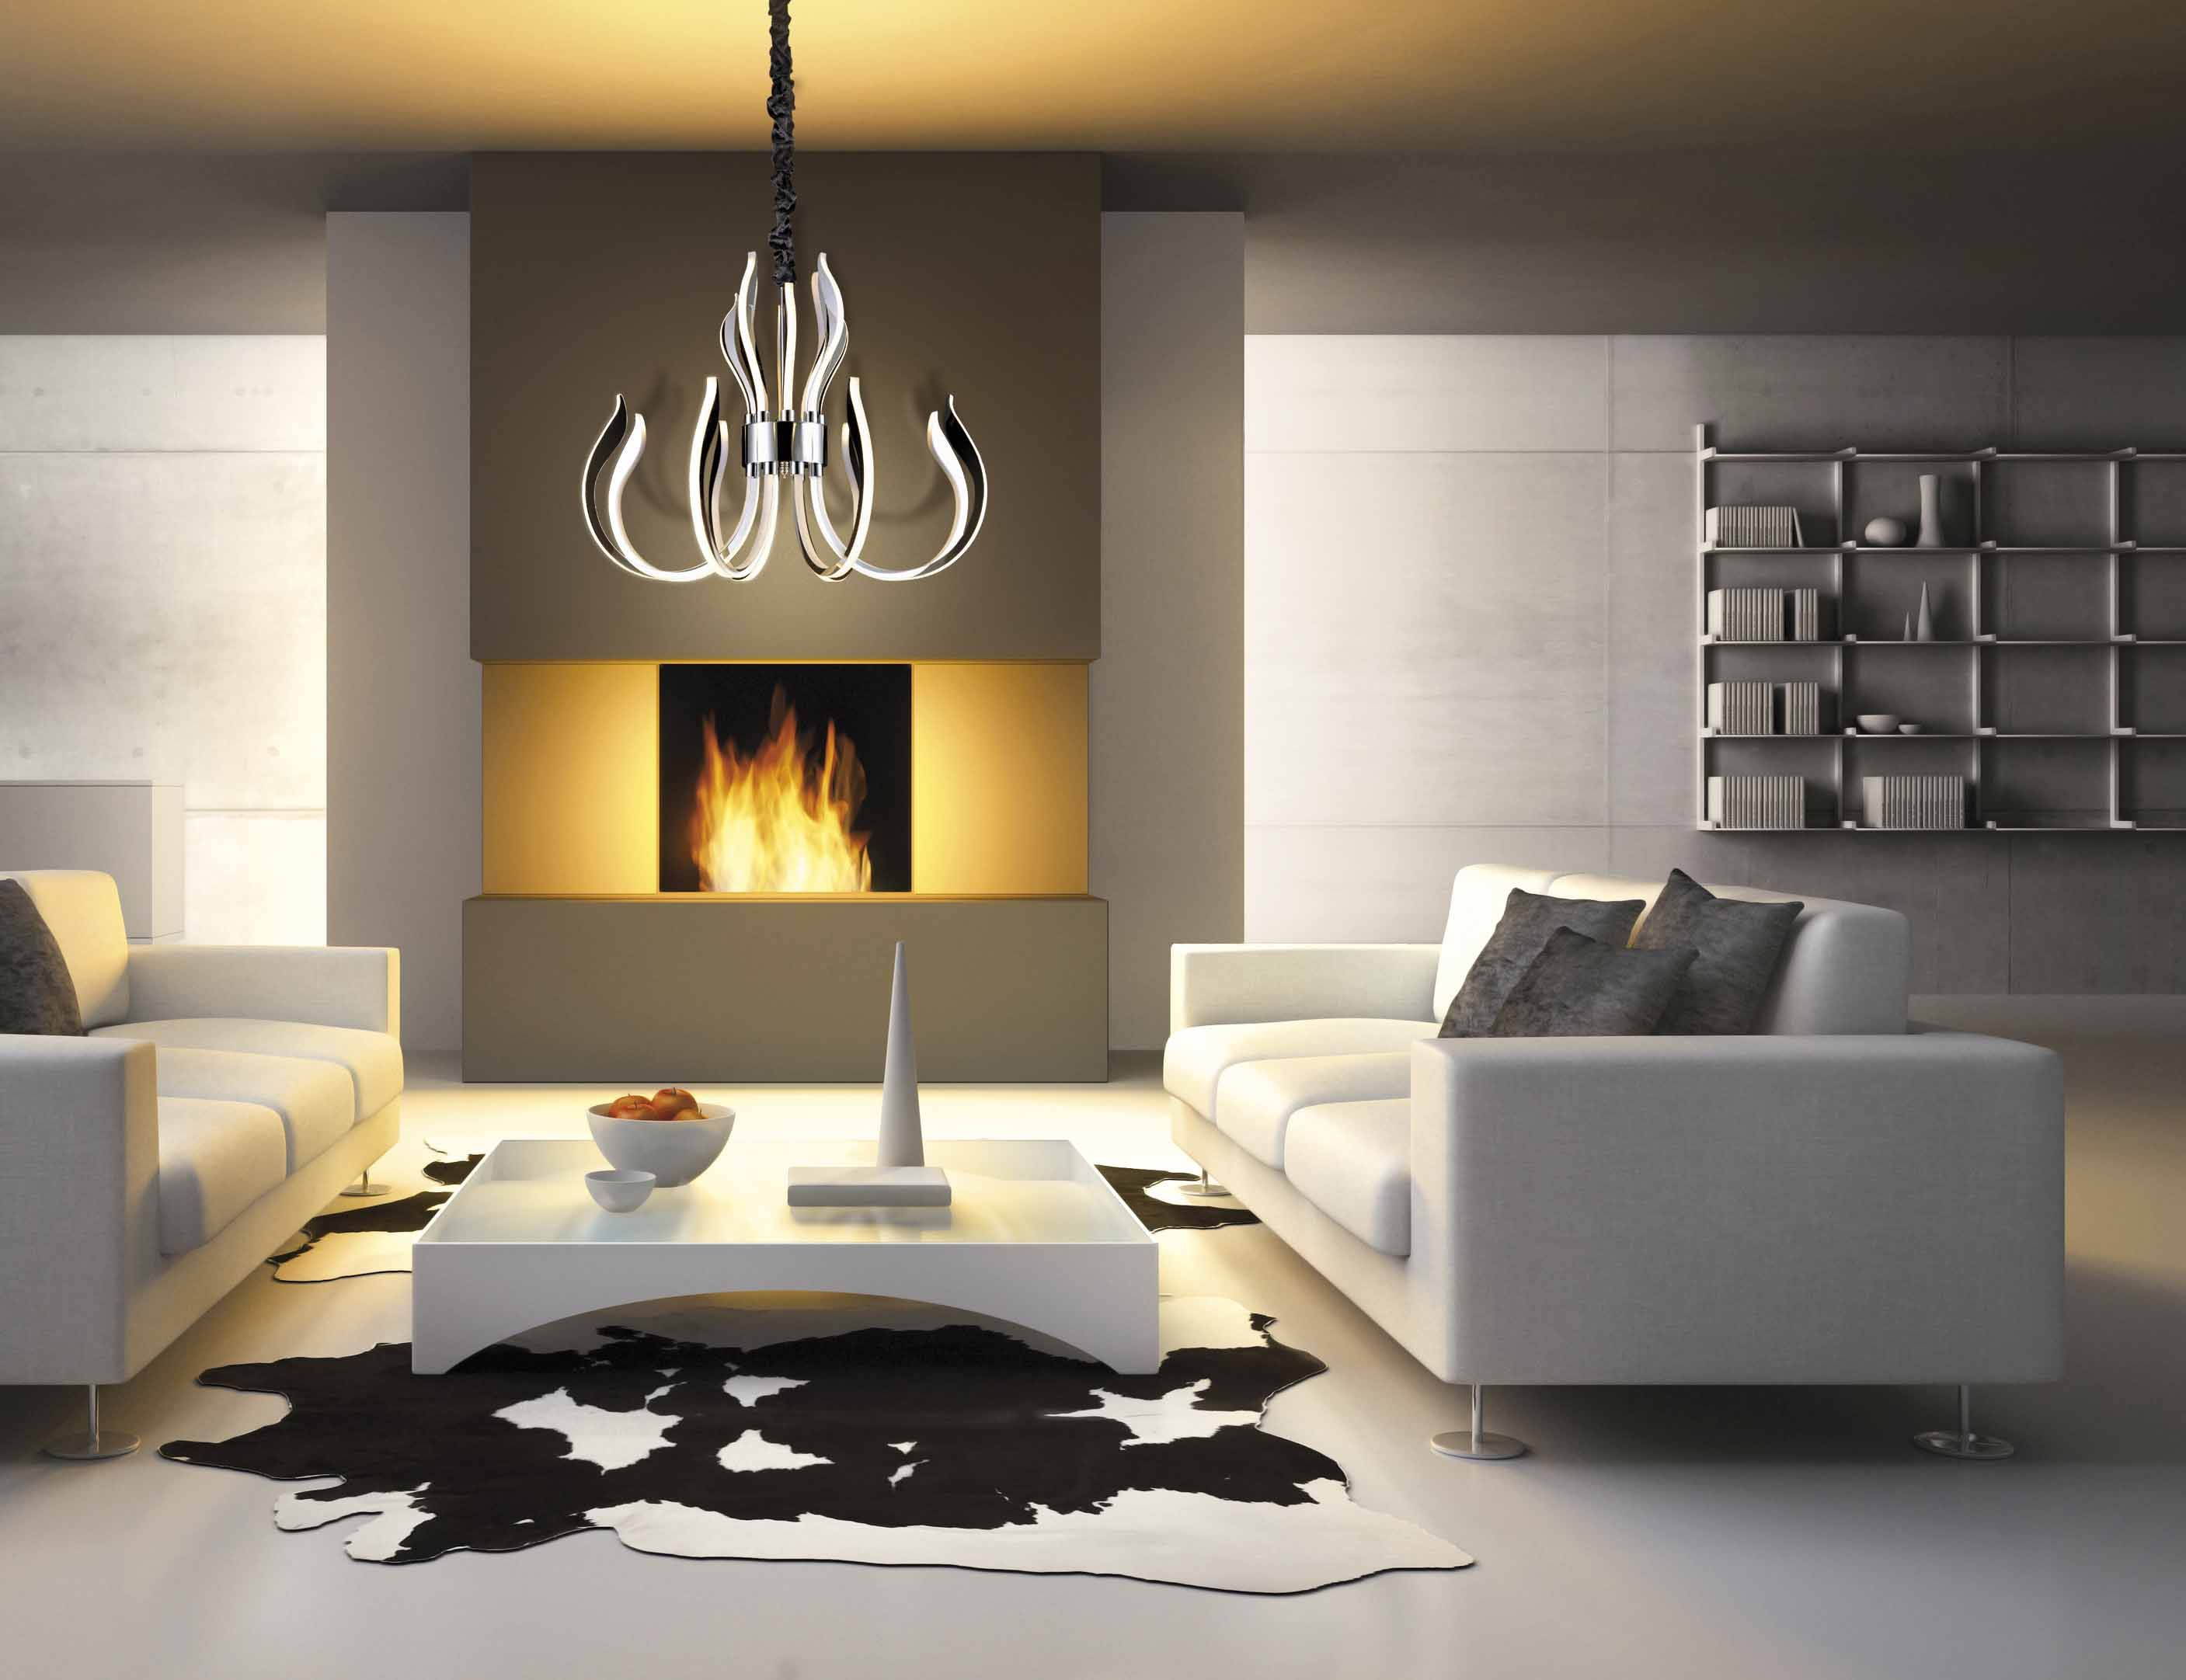 VERSAILLES New Collection - Designed by Mantra Team - #lighting #design #valencia # & VERSAILLES New Collection - Designed by Mantra Team - #lighting ... azcodes.com